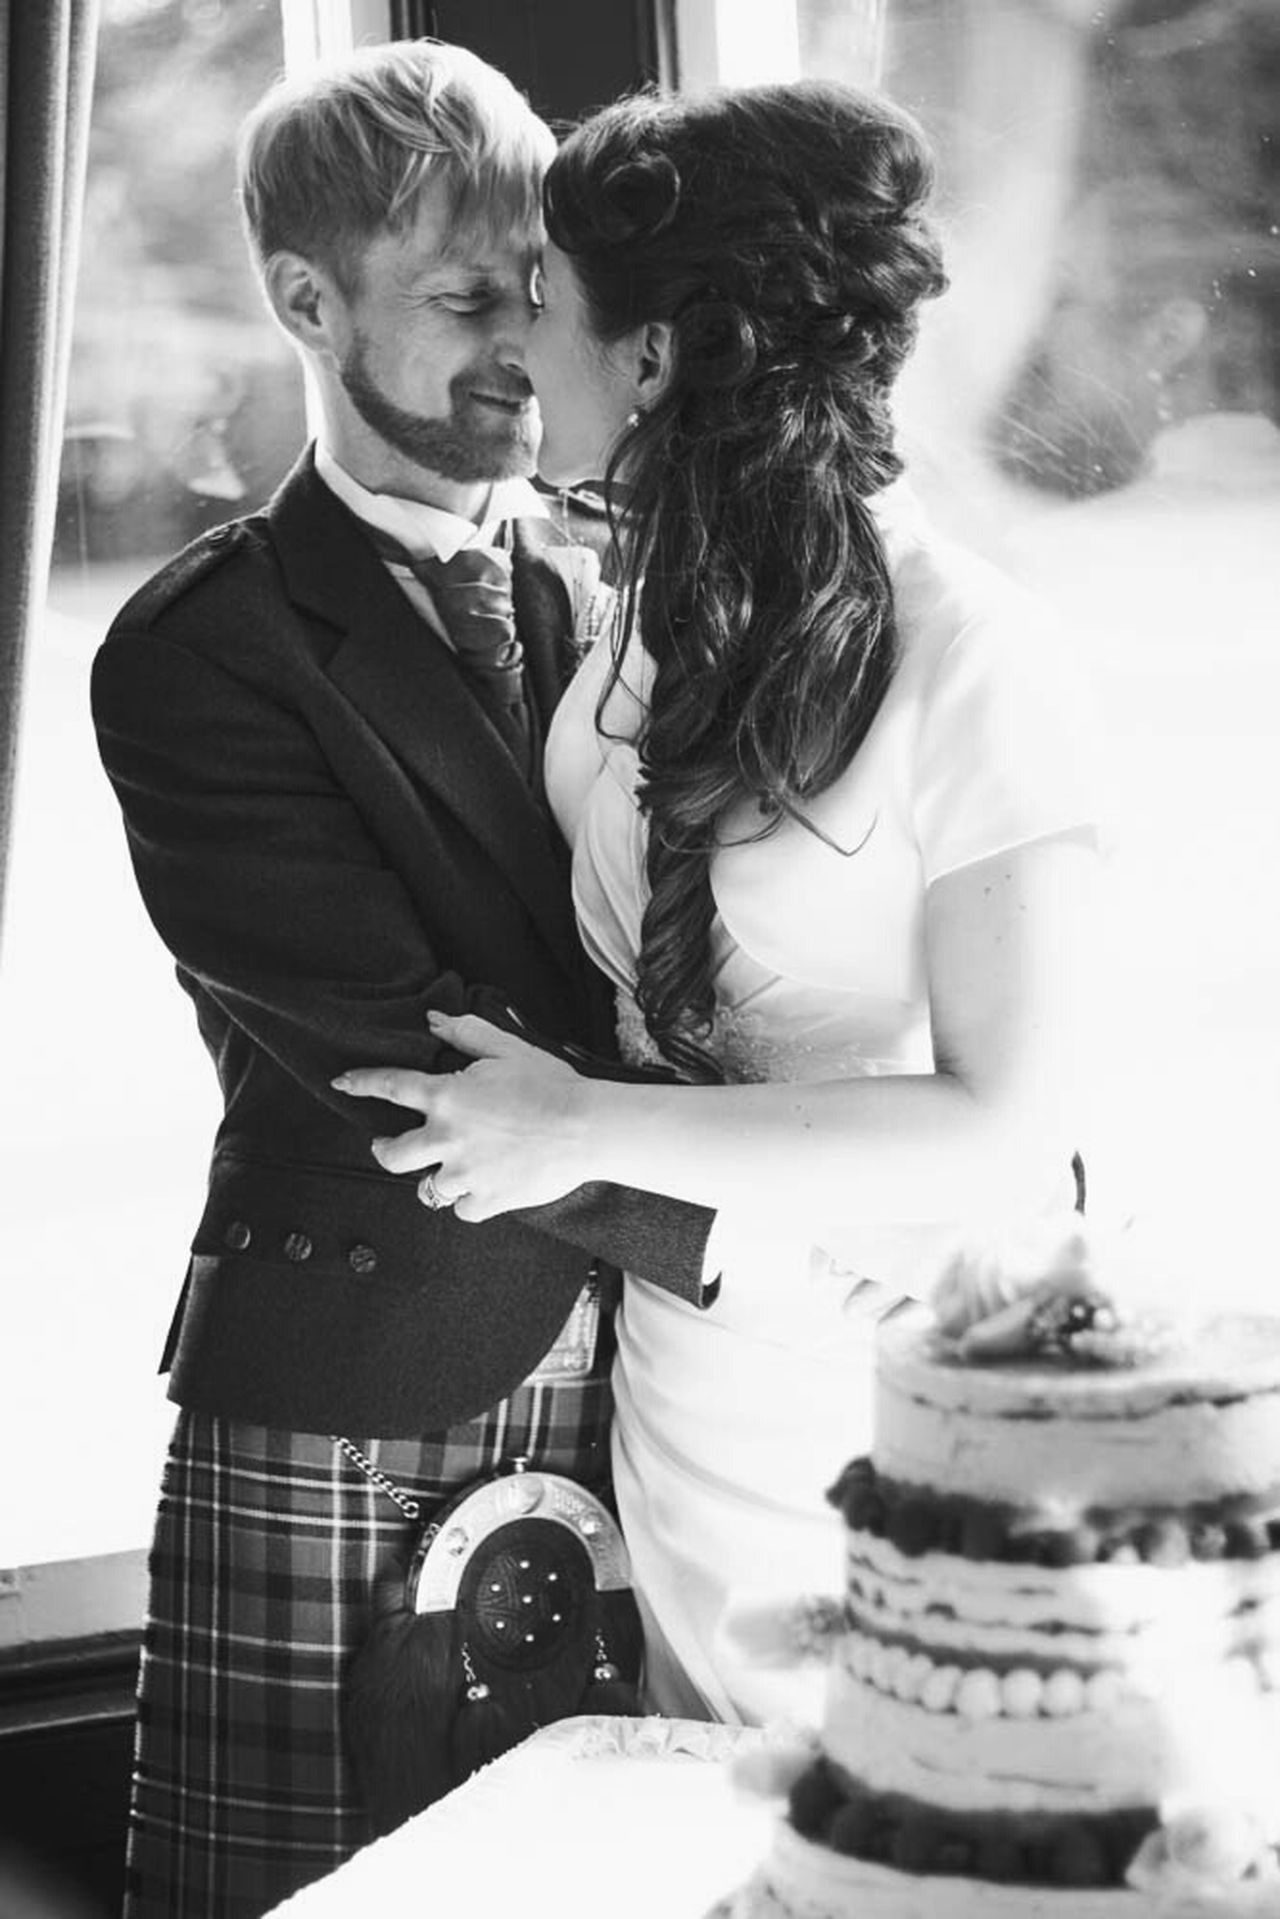 Two People Couple - Relationship Women Wedding Photography Weddings Around The World Scotland Scottish Arts Culture And Entertainment Highland Scottish Wedding Cake Wedding Cake Celebration Cakedesign Reception Tradition